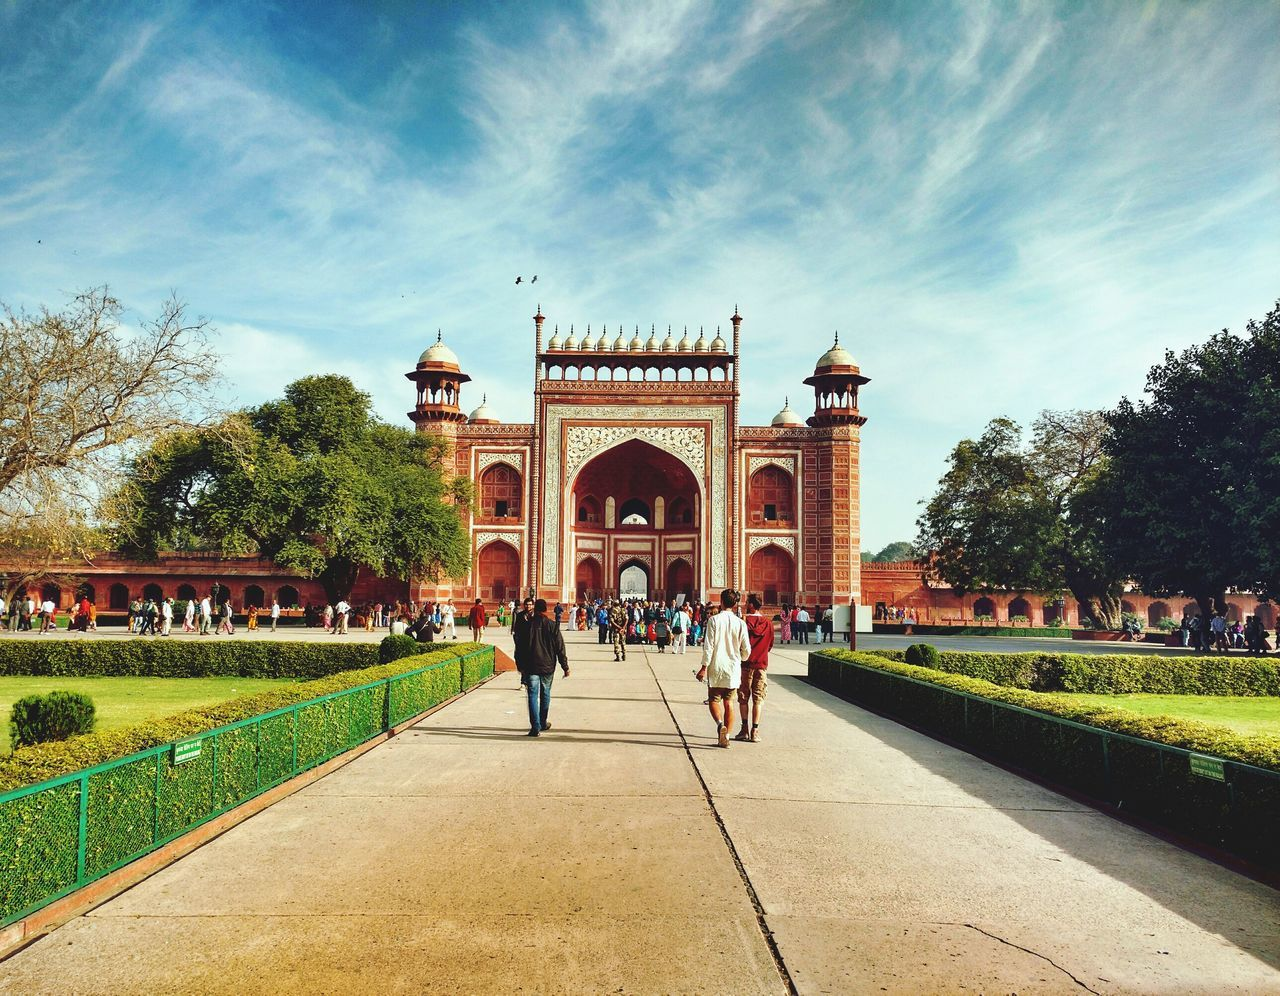 built structure, architecture, large group of people, travel destinations, tree, arch, tourism, day, building exterior, real people, history, sky, outdoors, cloud - sky, leisure activity, vacations, grass, lifestyles, triumphal arch, men, nature, people